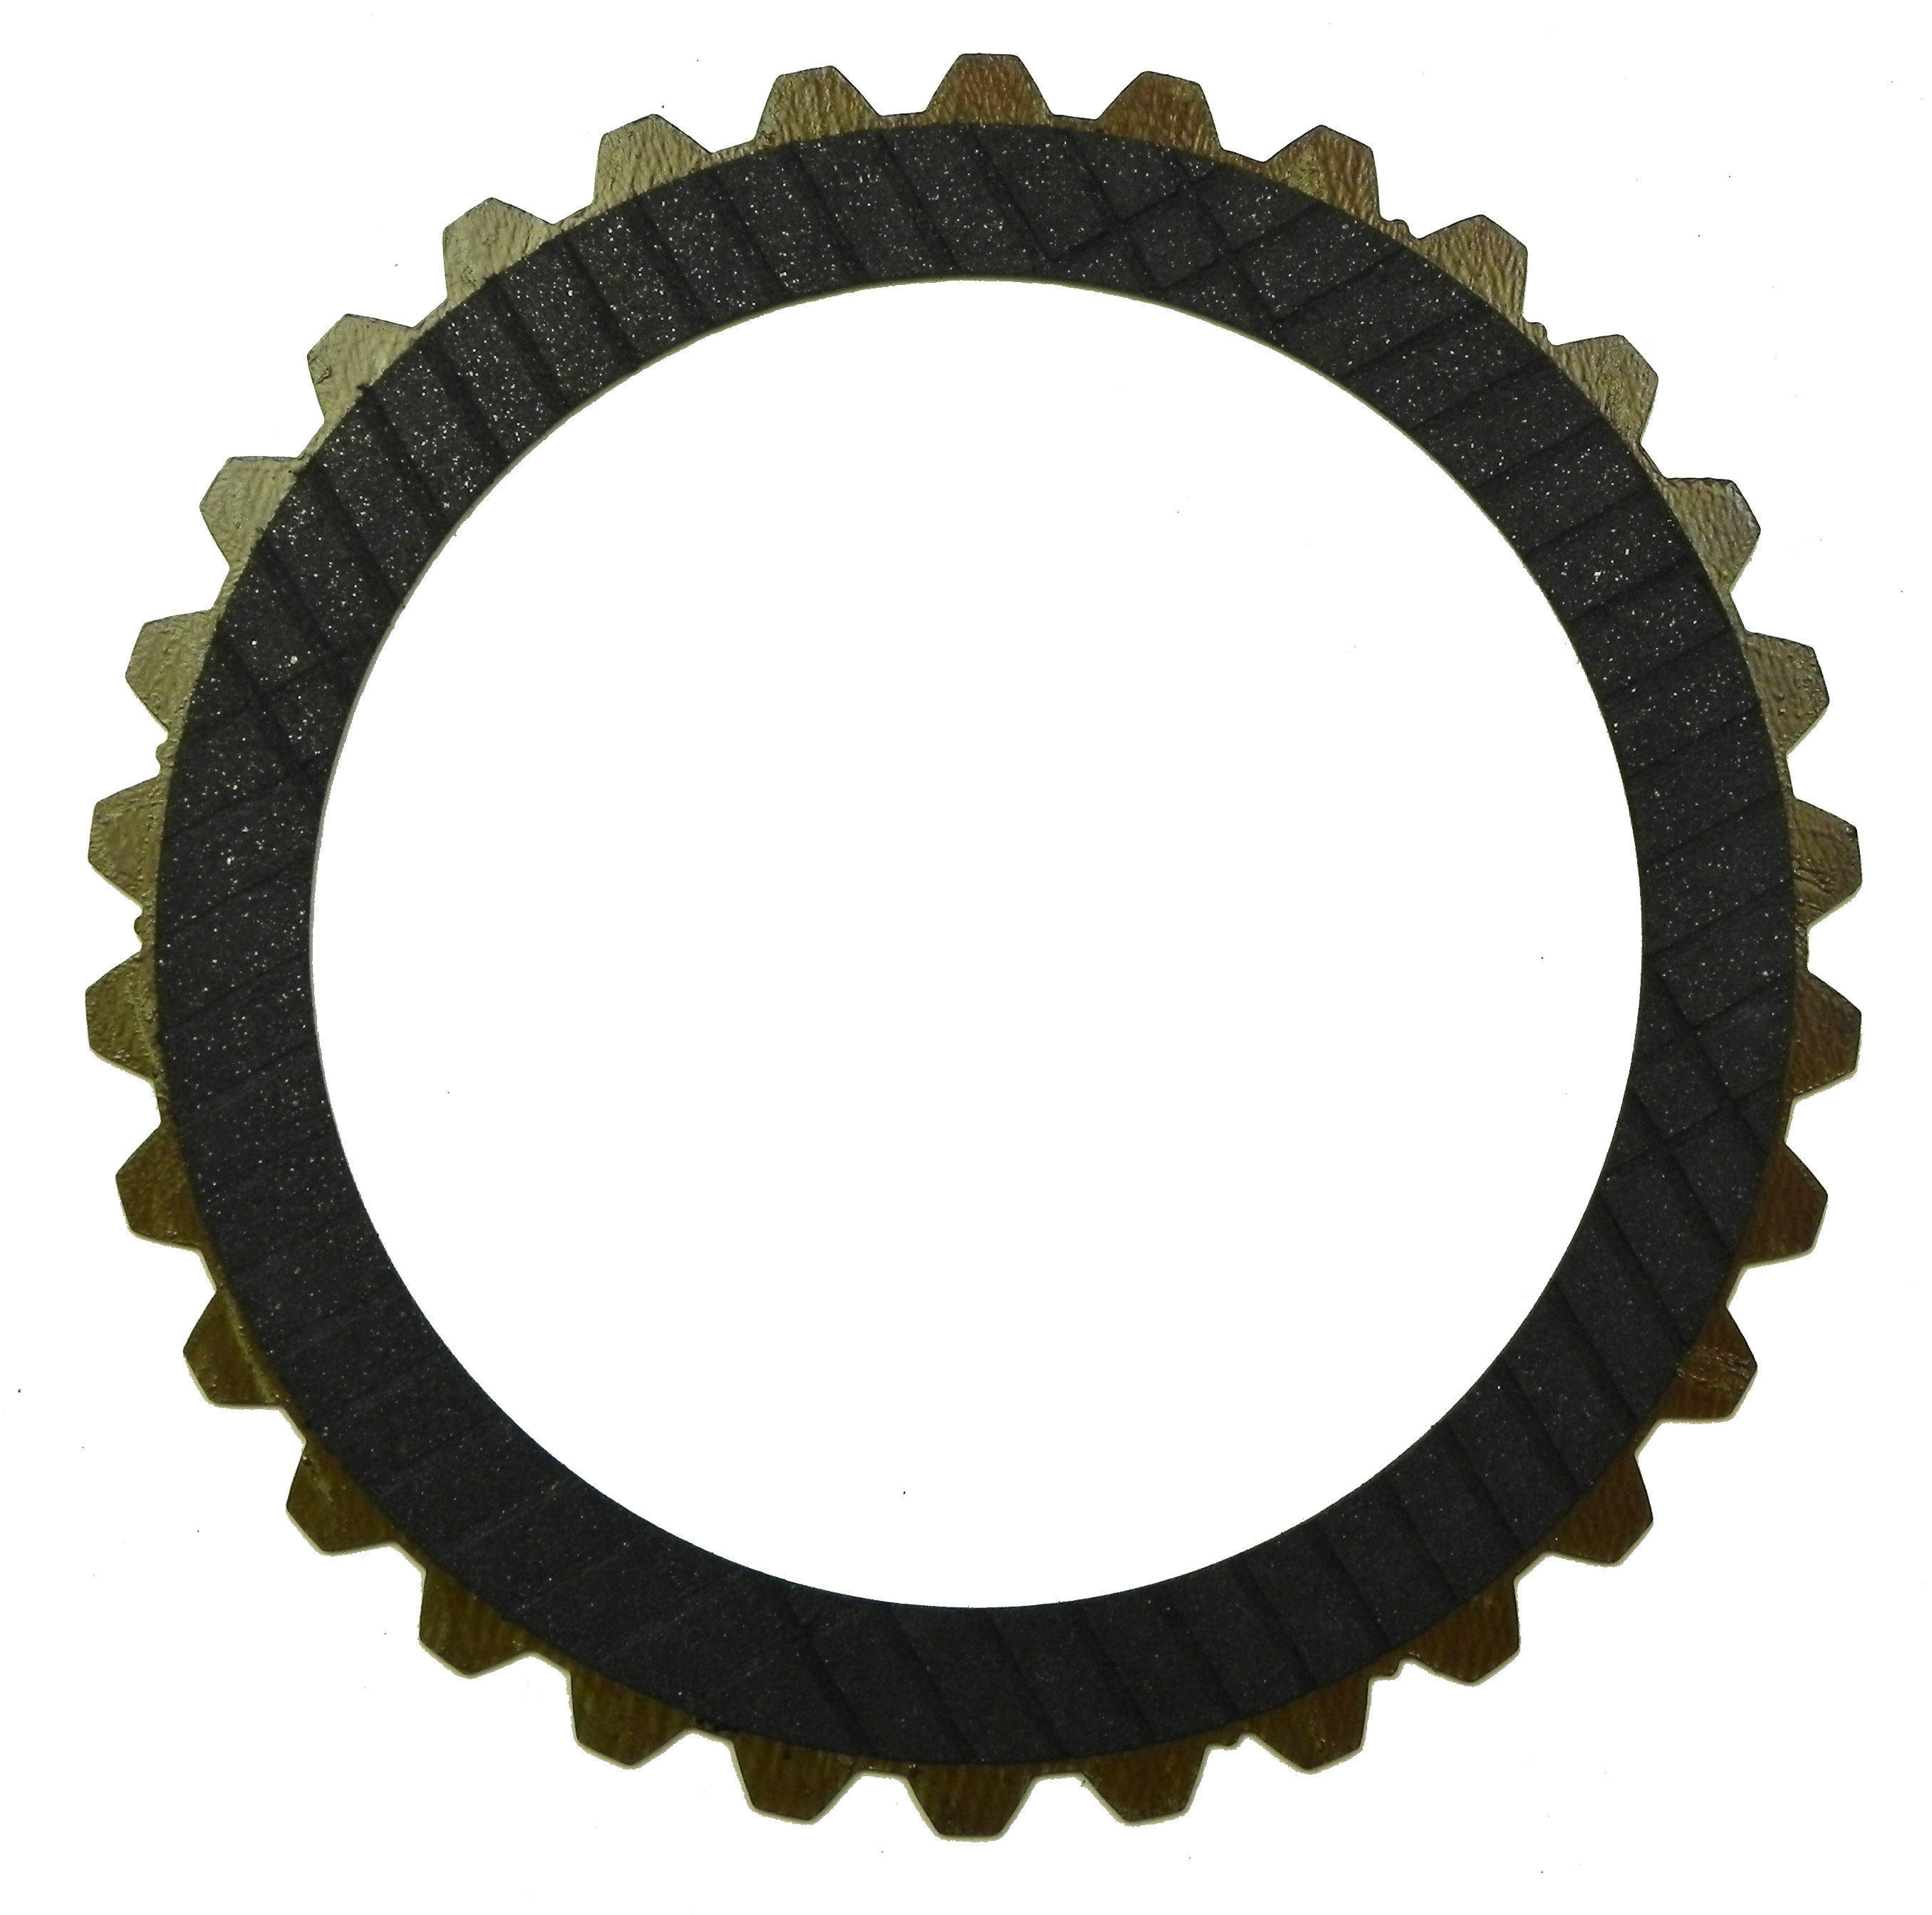 R558275 | 2007-ON Friction Clutch Plate High Energy Underdrive Direct, Single Sided, OD Spline High Energy